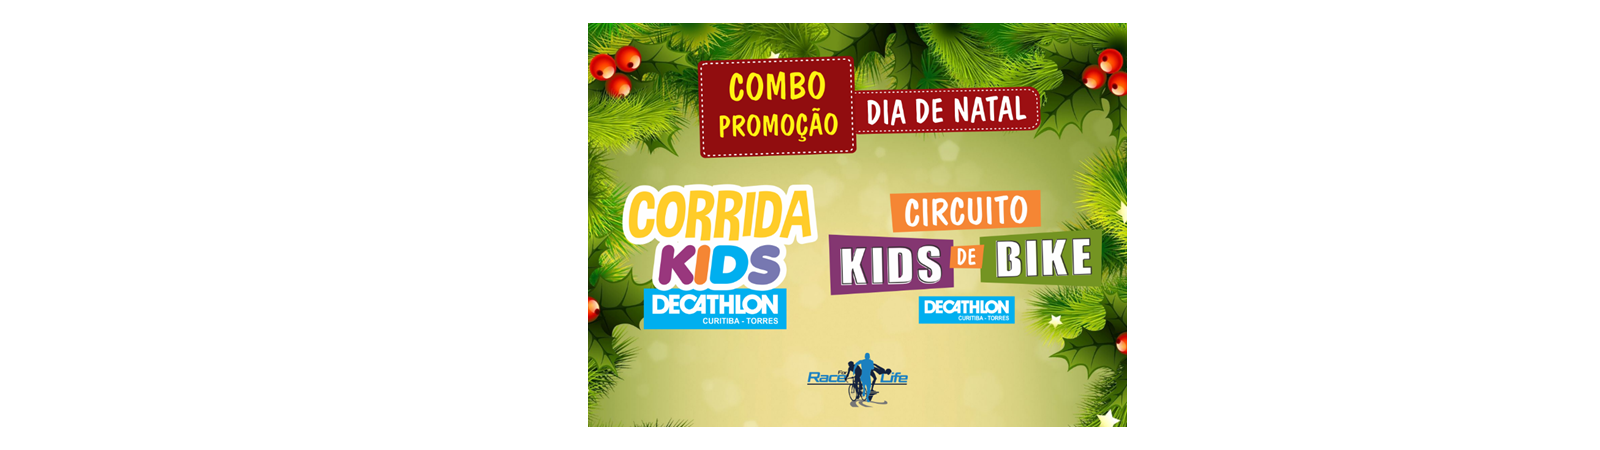 COMBO - CIRCUITO KIDS DE BIKE DECATHLON TORRES E CORRIDA KIDS DECATHLON